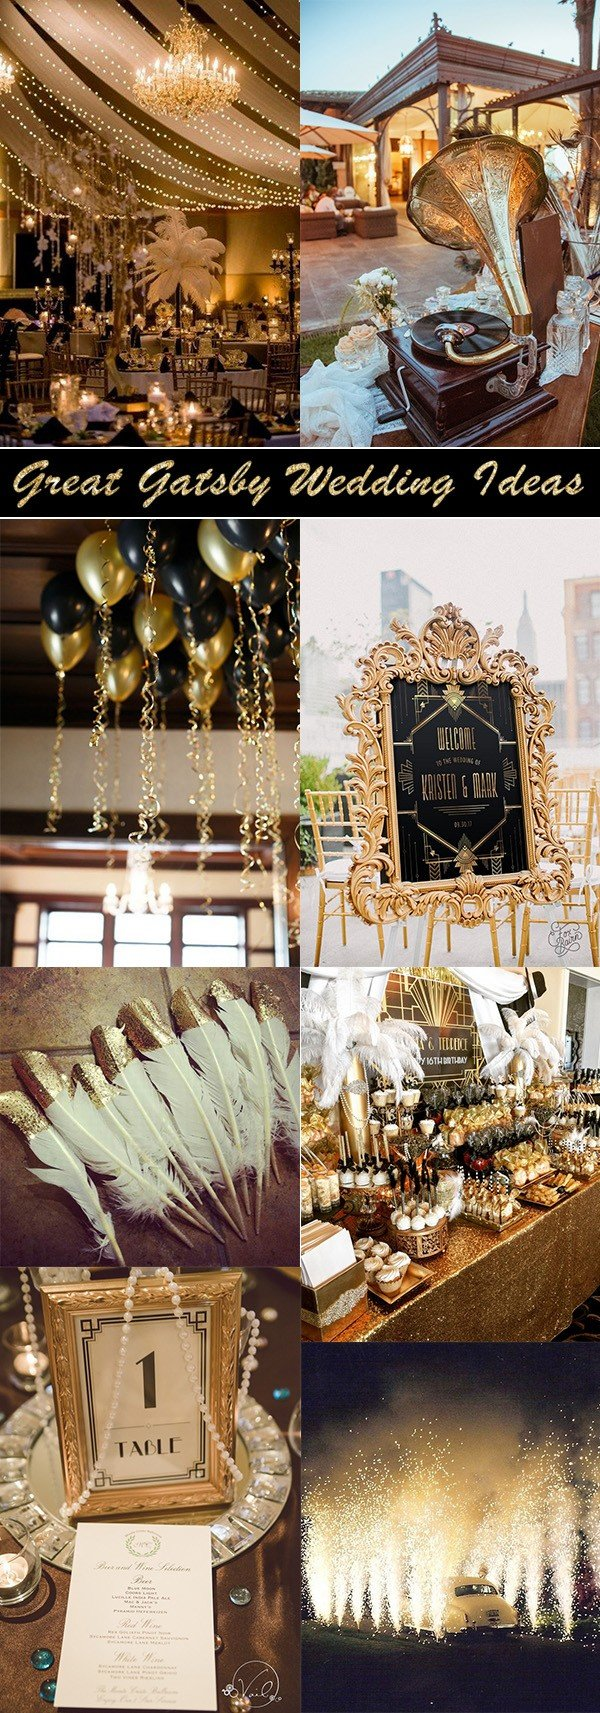 great gatsby themed vintage wedding ideas